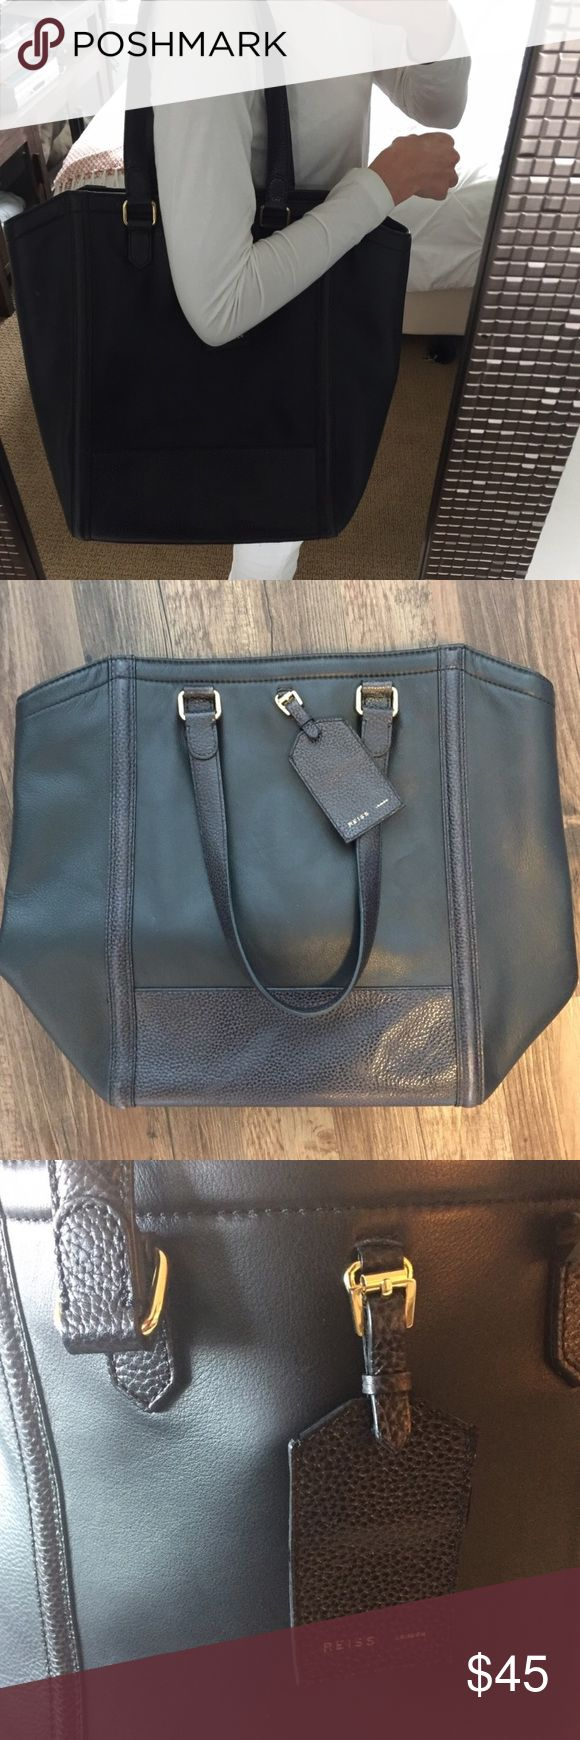 Reiss London Black Leather Tote Bag Reiss London Black Leather Tote Bag. New condition. reiss london Bags Totes